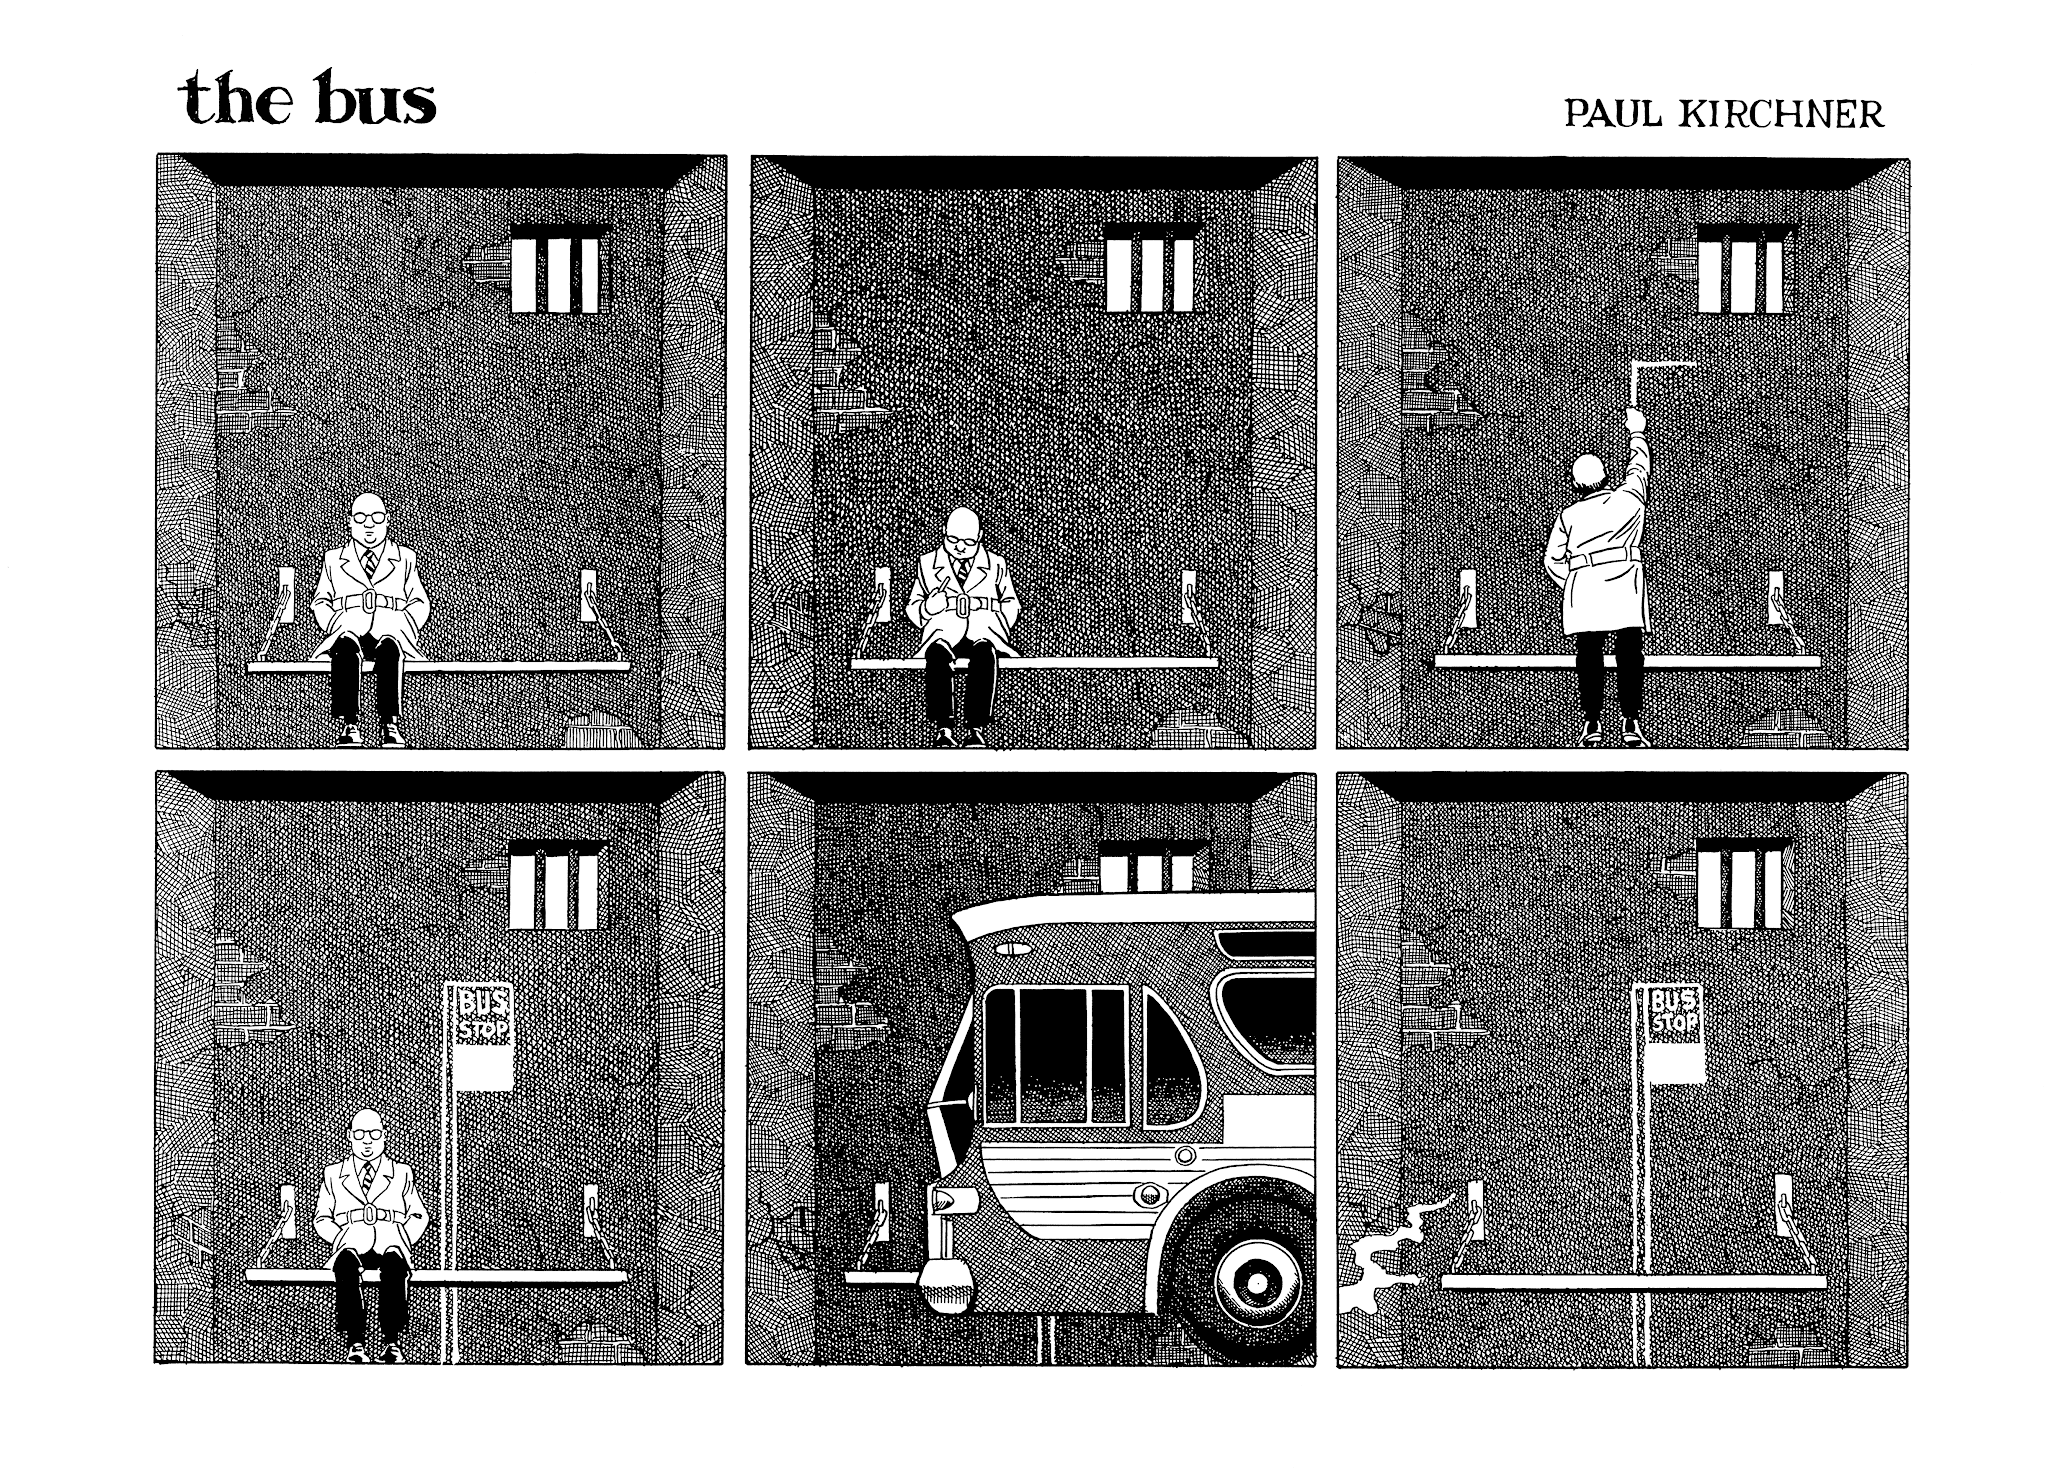 the bus (1979) #43 by Paul Kirchner.